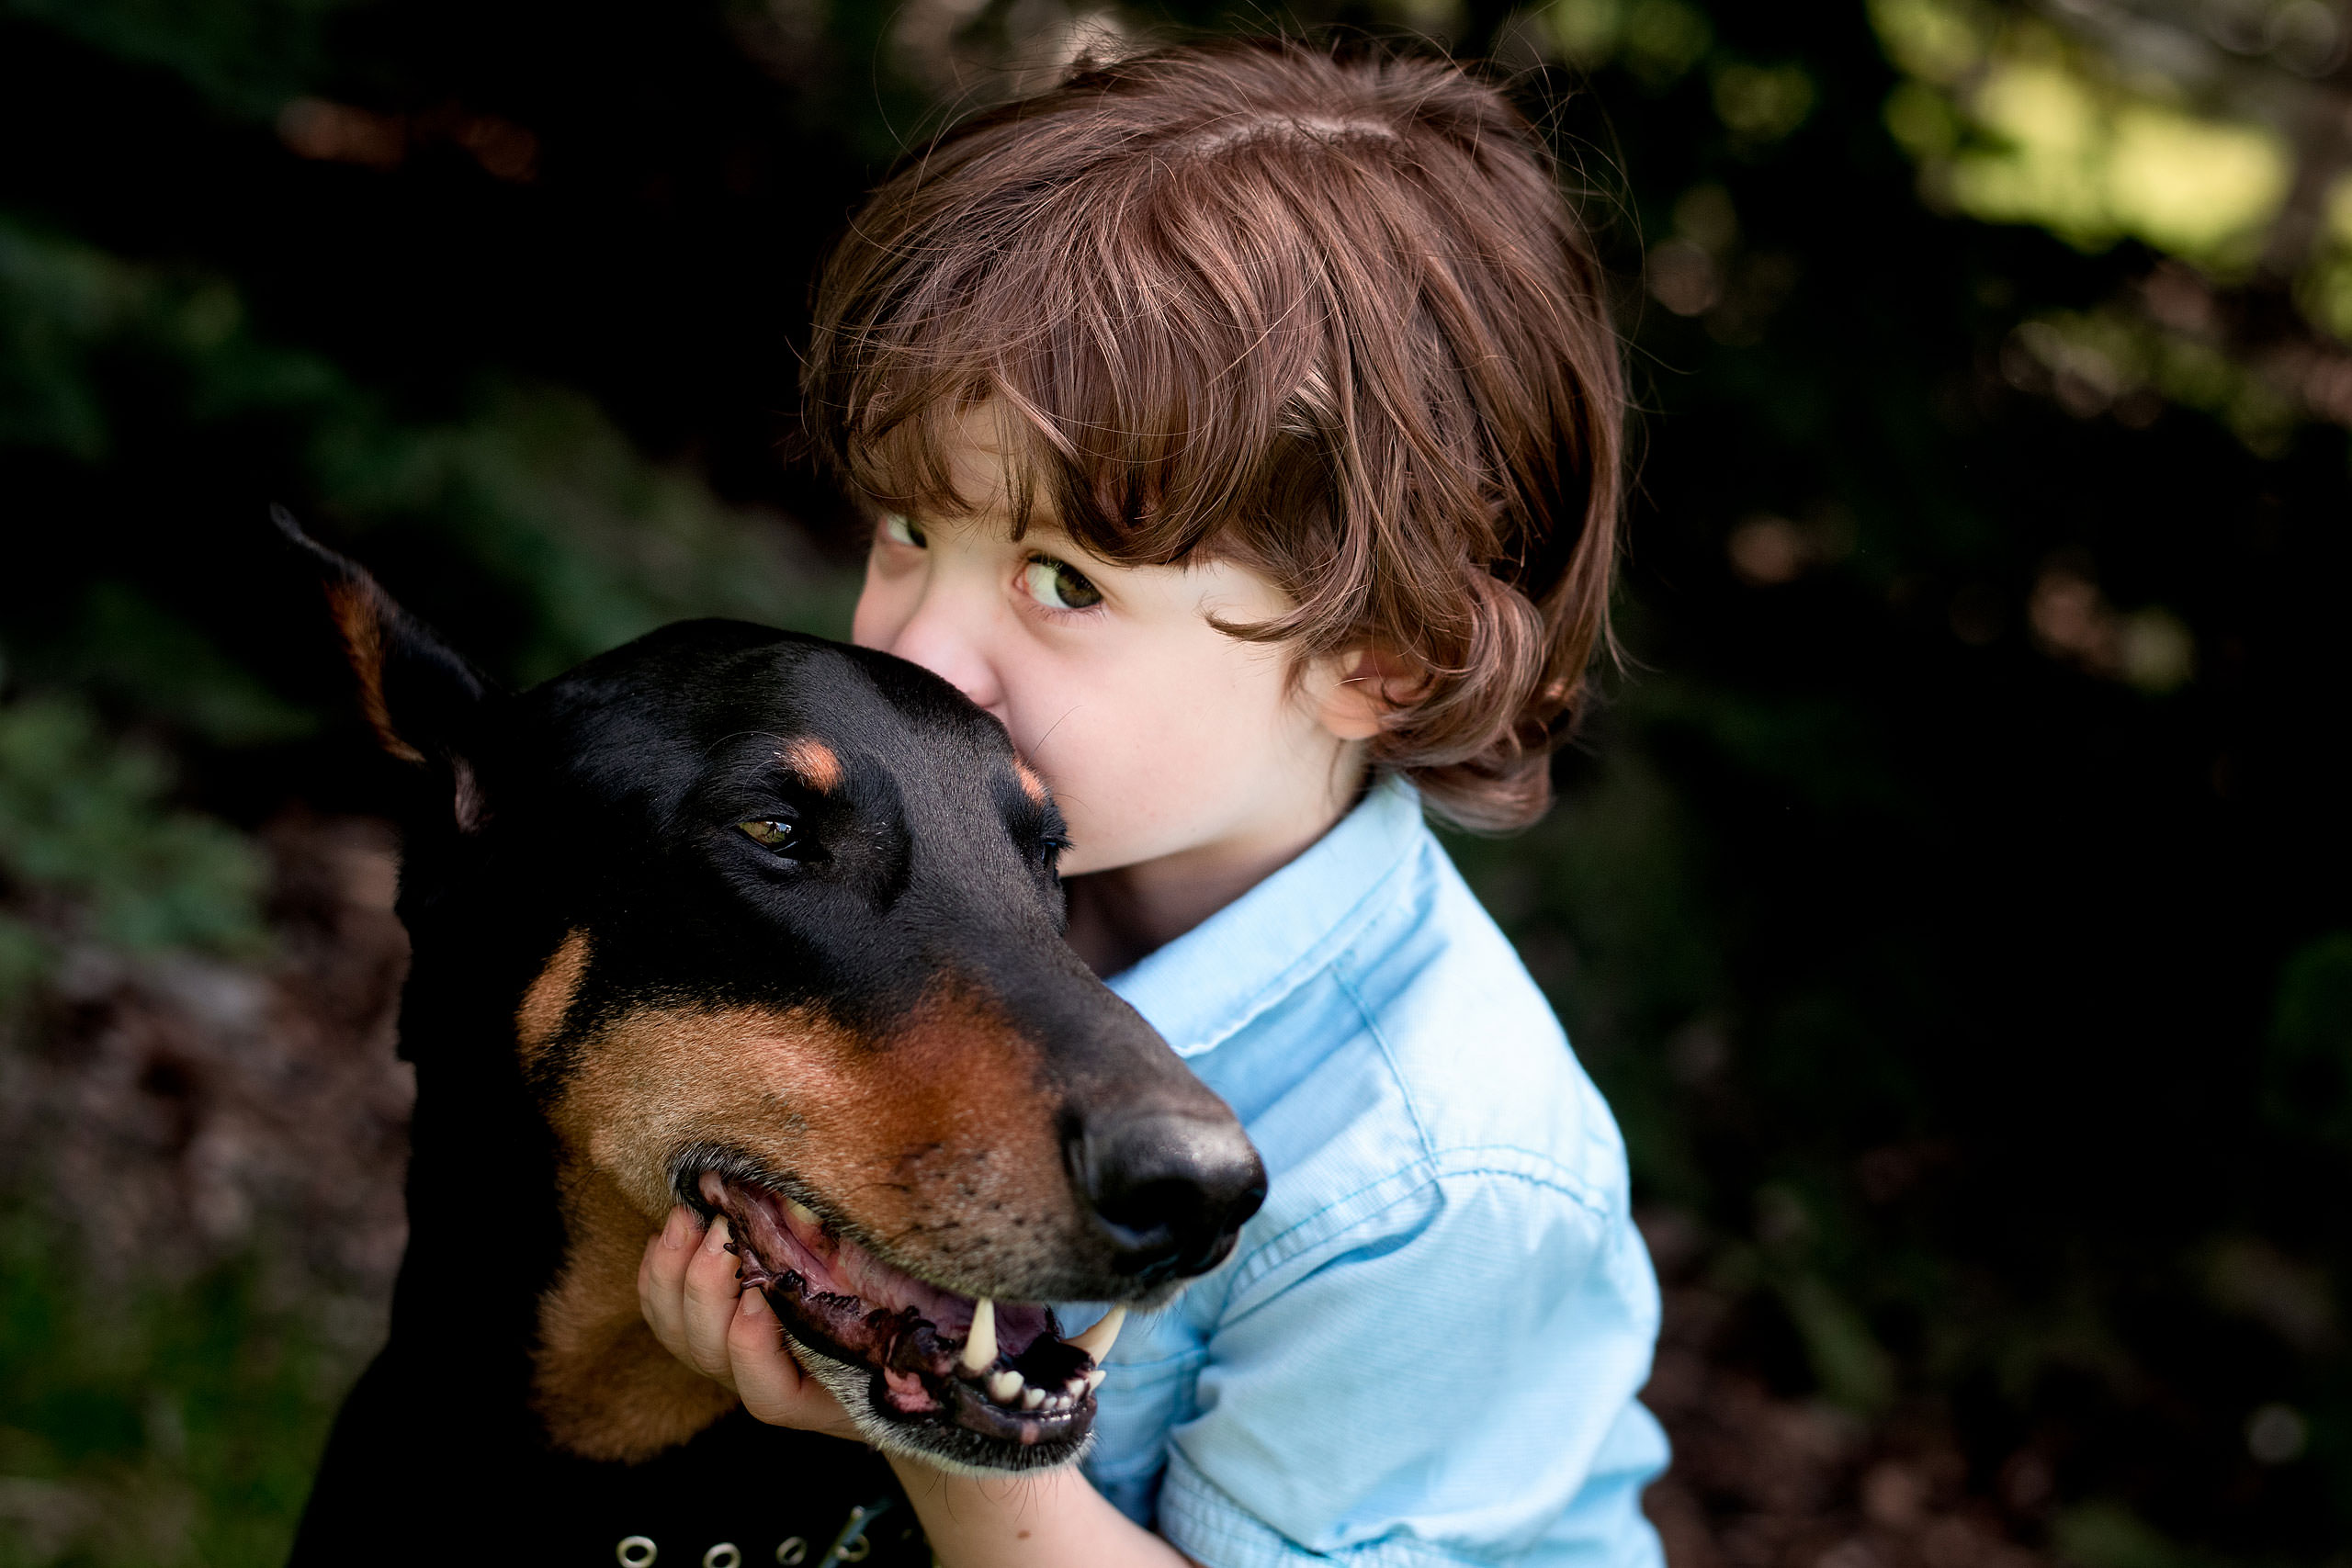 a young boy giving his dog a kiss by Red Deer Family Photographer Sean LeBlanc